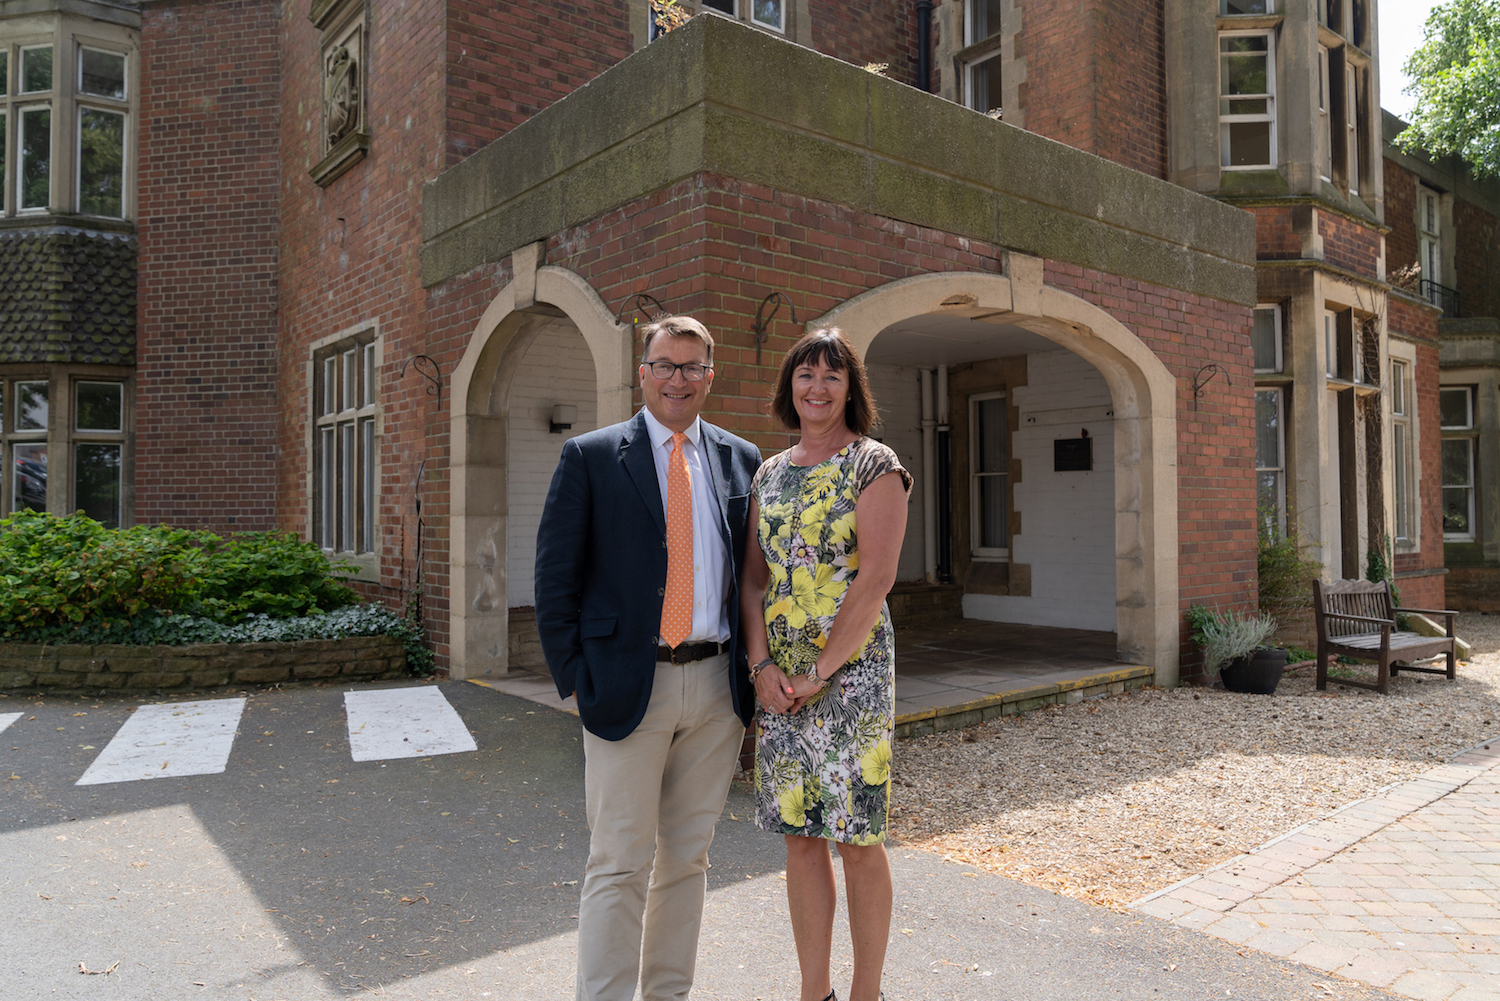 Rotherhill expands